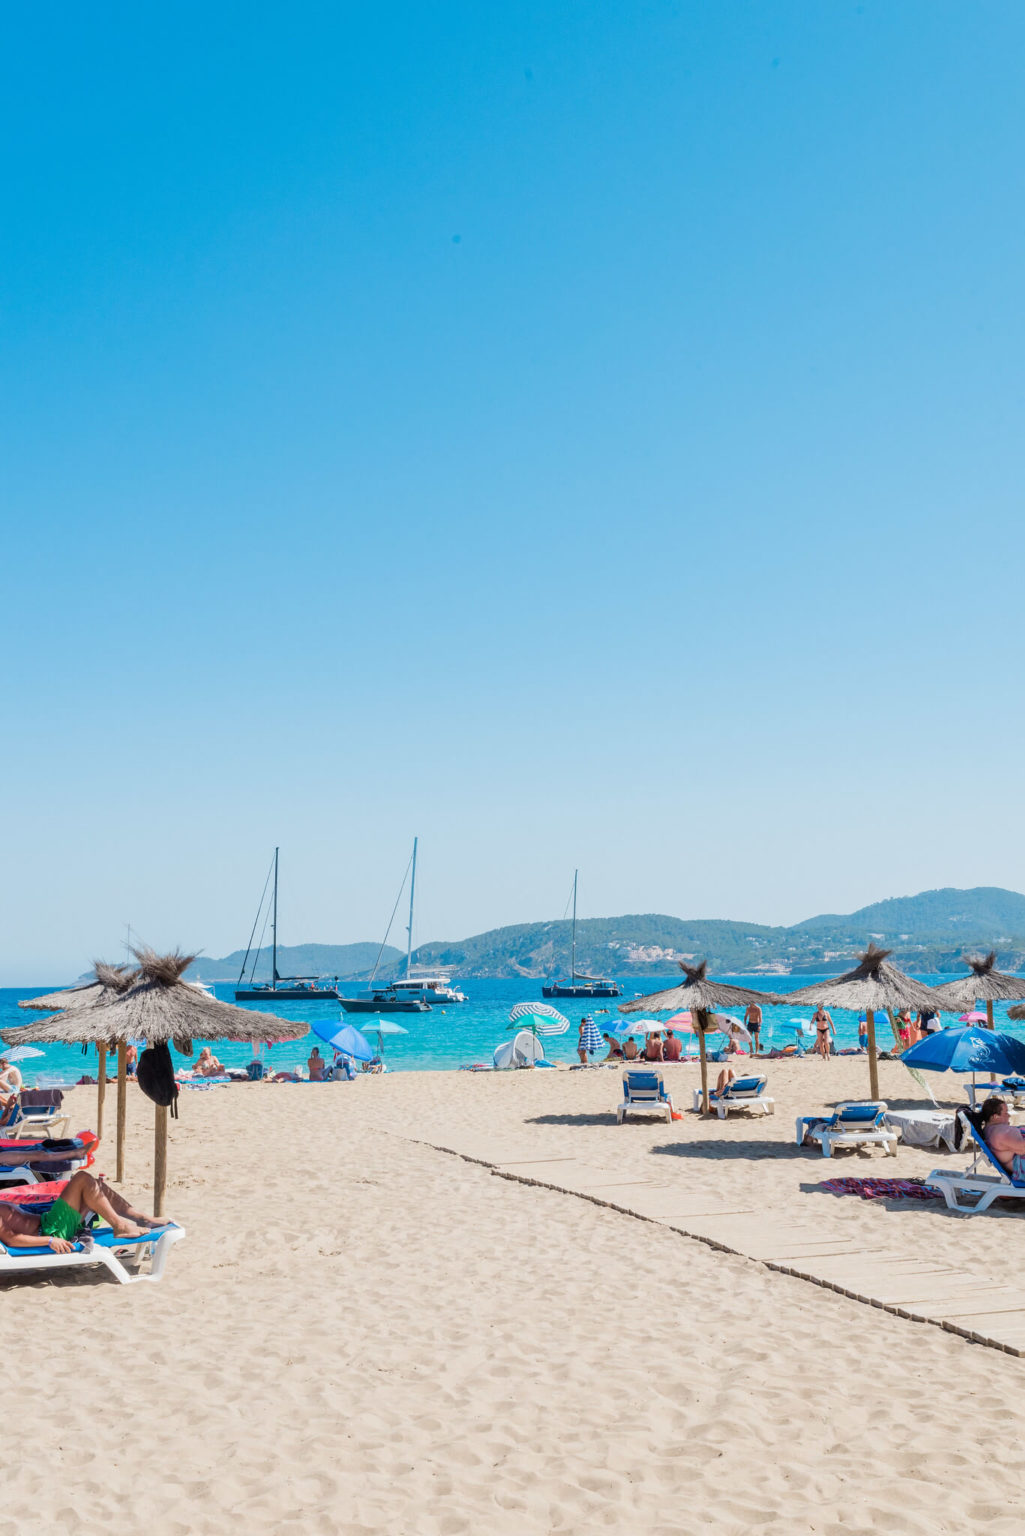 https://www.white-ibiza.com/wp-content/uploads/2020/03/ibiza-beaches-cala-san-vicente-03-1025x1536.jpg